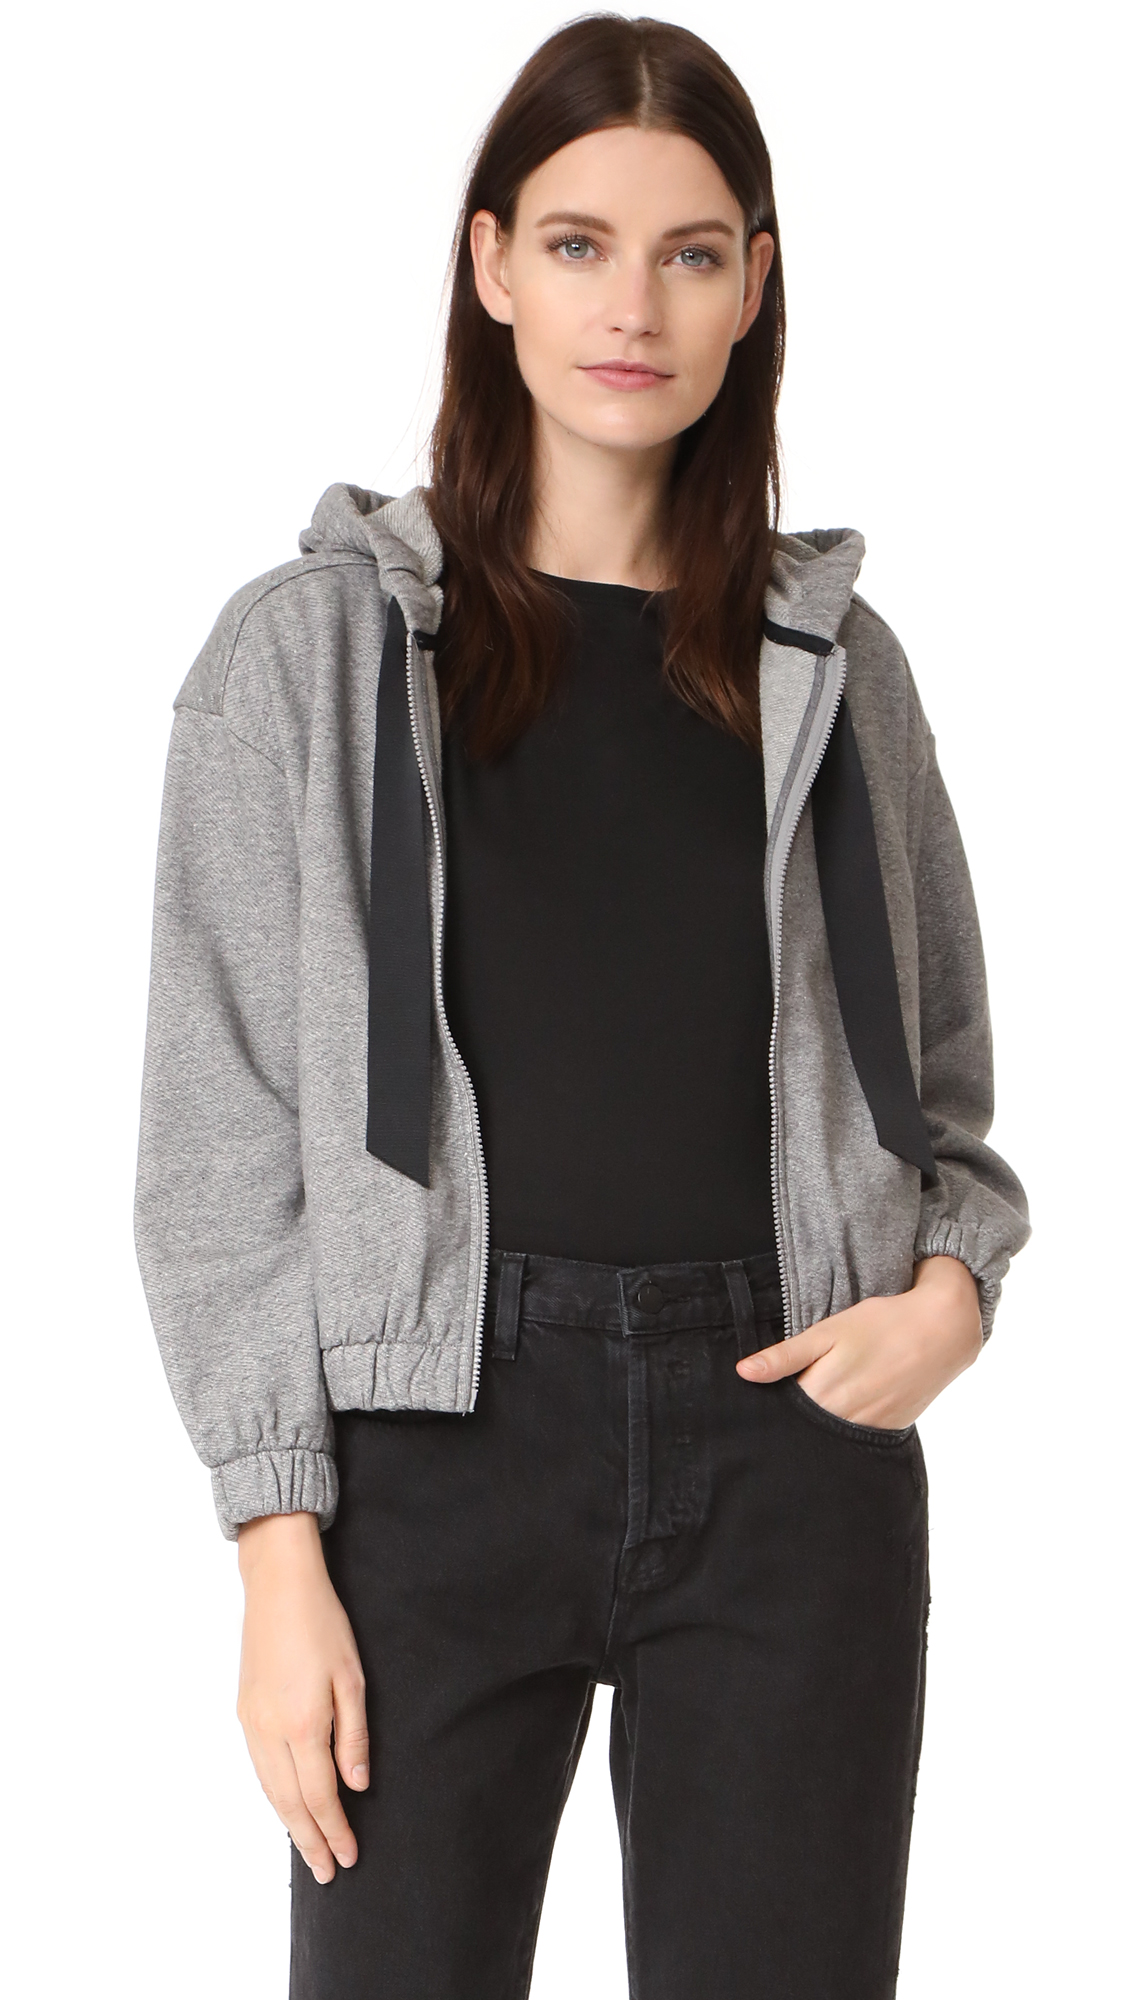 DEMYLEE Seanne Zip Up Sweatshirt - Medium Heather Grey